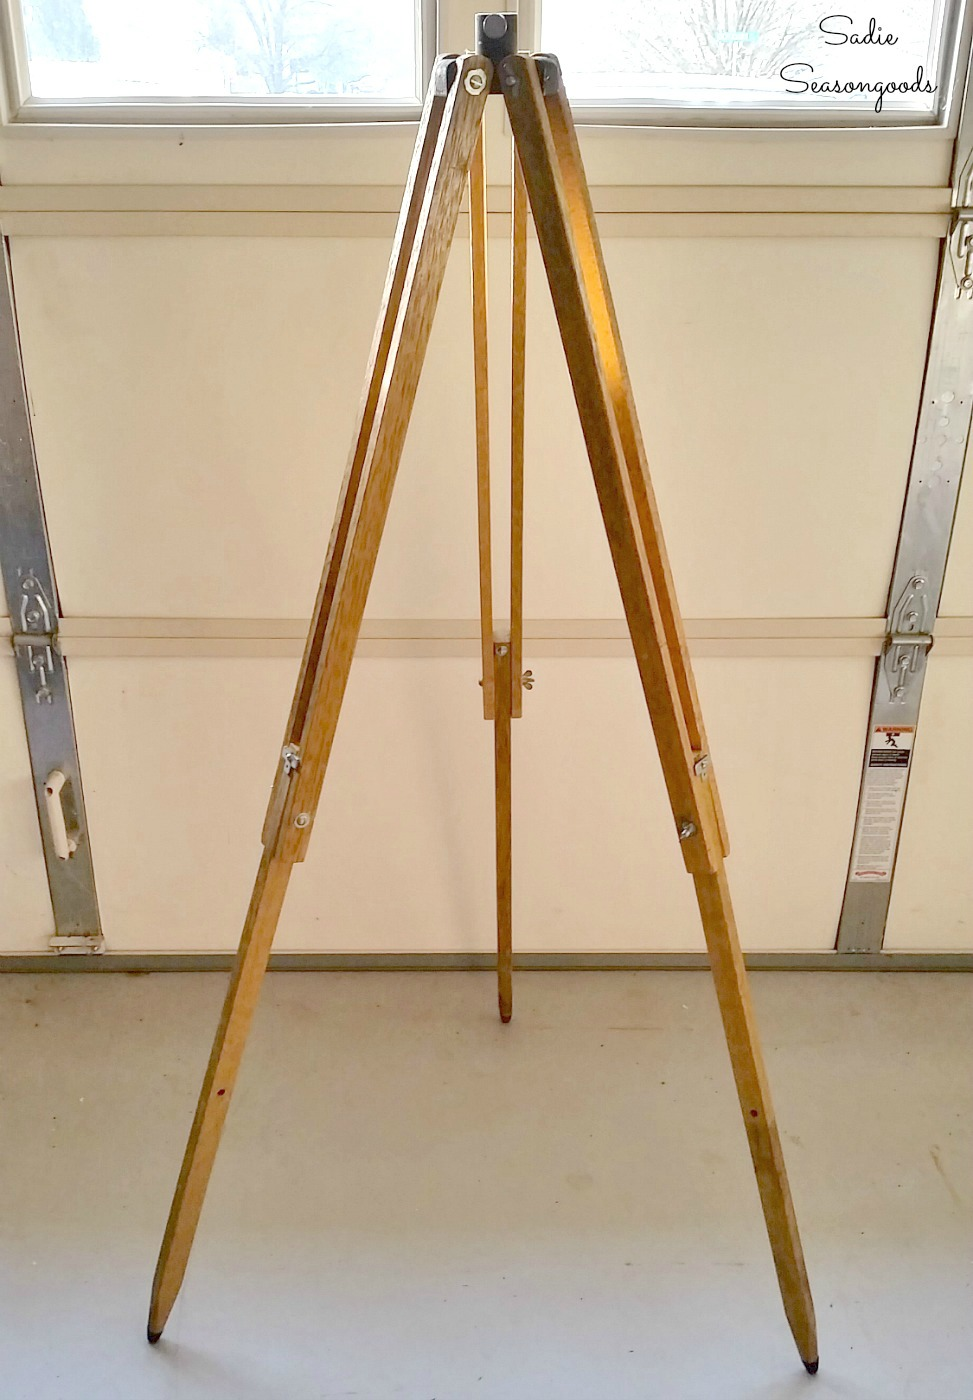 Upcycling a surveyors tripod into an industrial floor lamp or tripod lamp with lamp kit by Sadie Seasongoods / www.sadieseasongoods.com